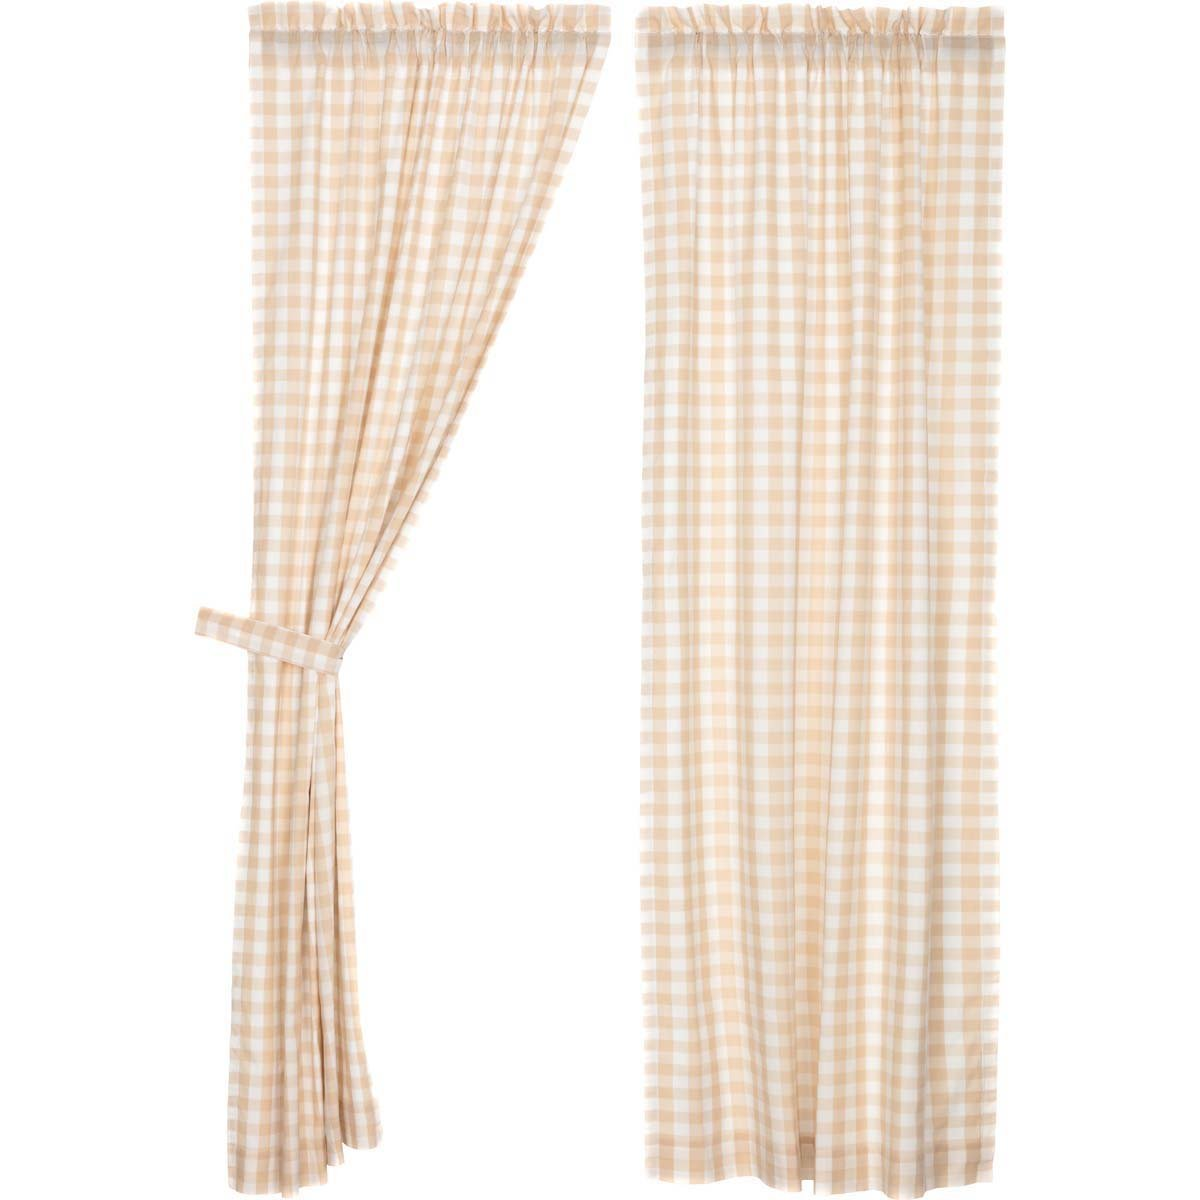 VHC Brands Farmhouse Window Curtains-Annie Buffalo Check White Lined Panel Pair, Grey 40458